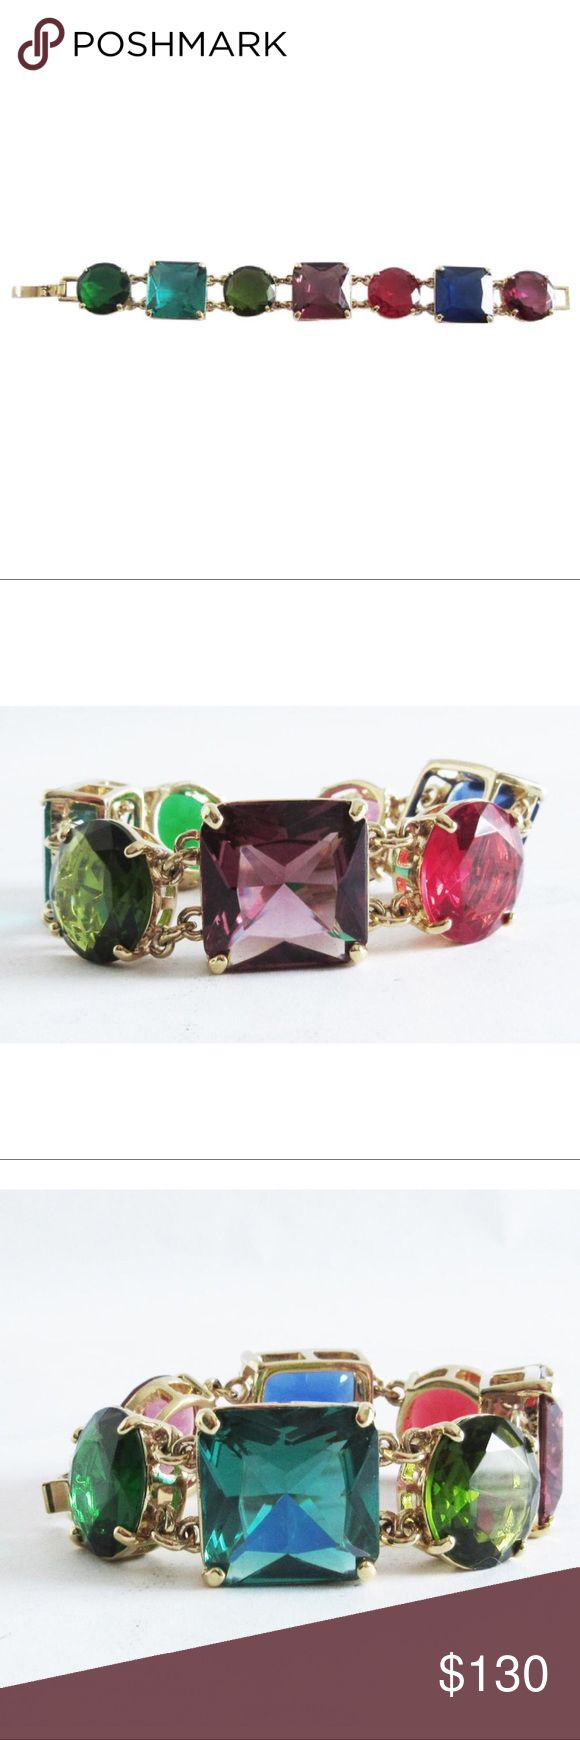 """KATE SPADE New York Crystal Kaleidoscope Jumbo KATE SPADE New York """"Crystal Kaleidoscope"""" Jumbo Link Bracelet  Faceted resin & 12k gold plated brass Fold over closure. 7.5""""L. Excellent, pre-owned condition Beautiful, bold, colorful statement bracelet by Kate Spade. No Trades kate spade Jewelry Bracelets"""